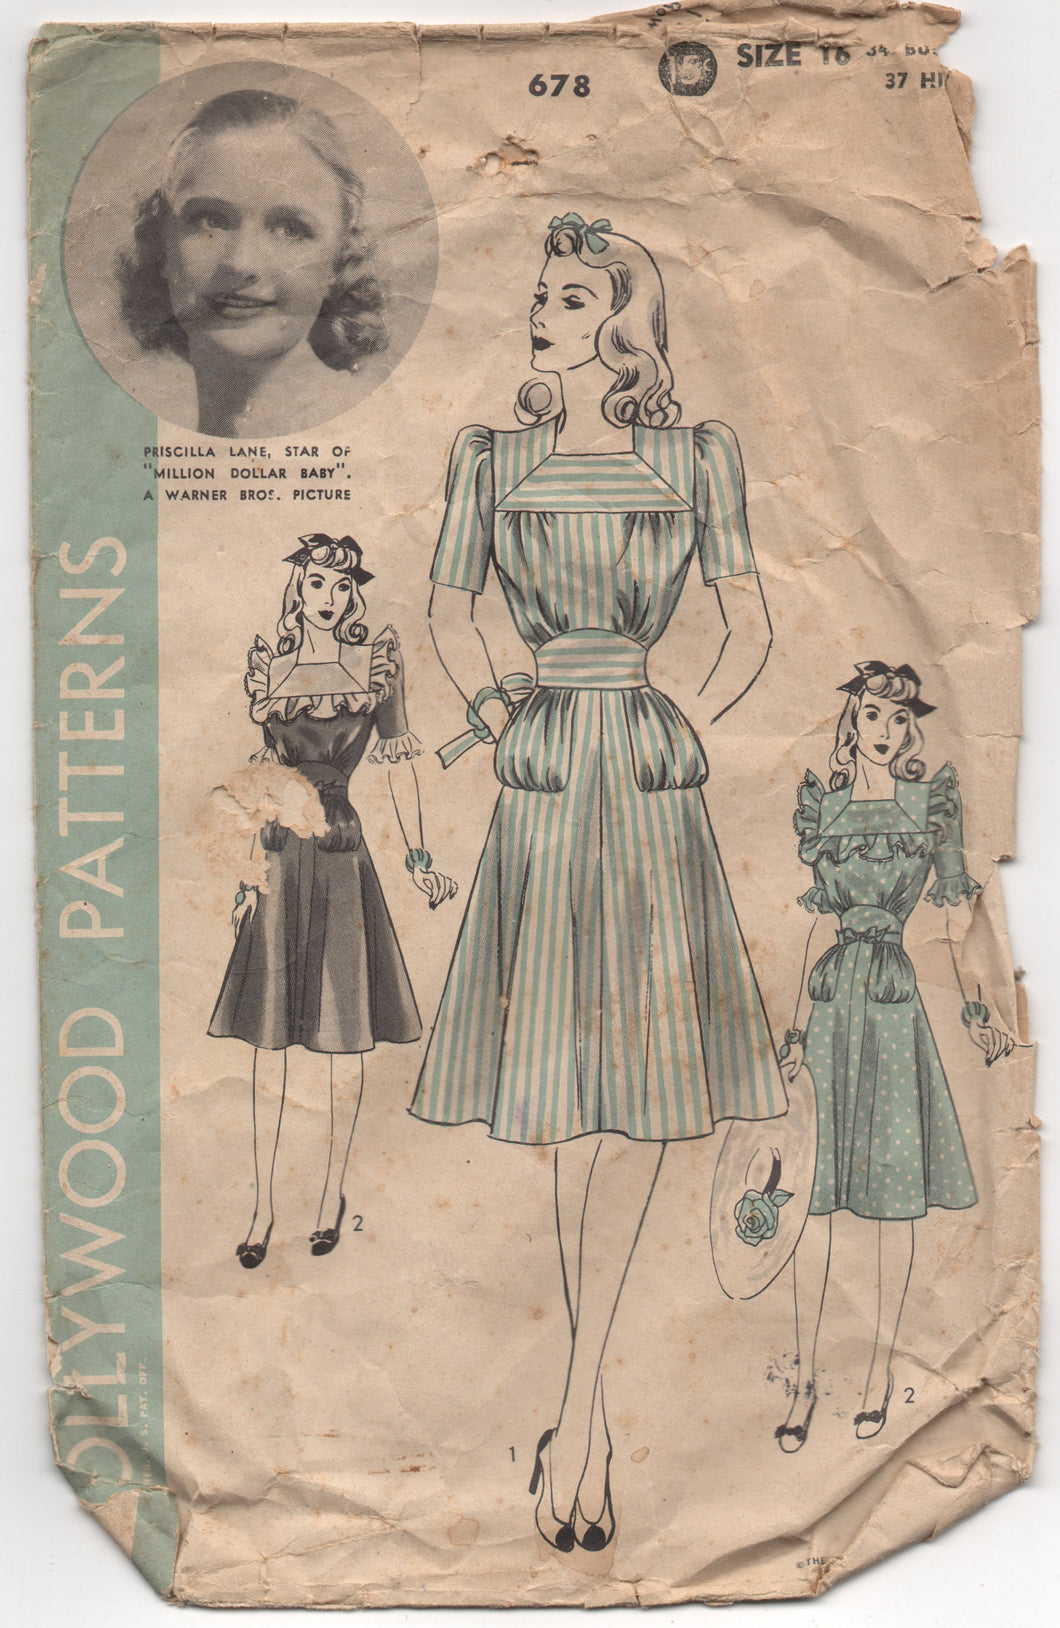 1940's Hollywood One Piece Dress with Square Collar and Ruffles - Bust 34